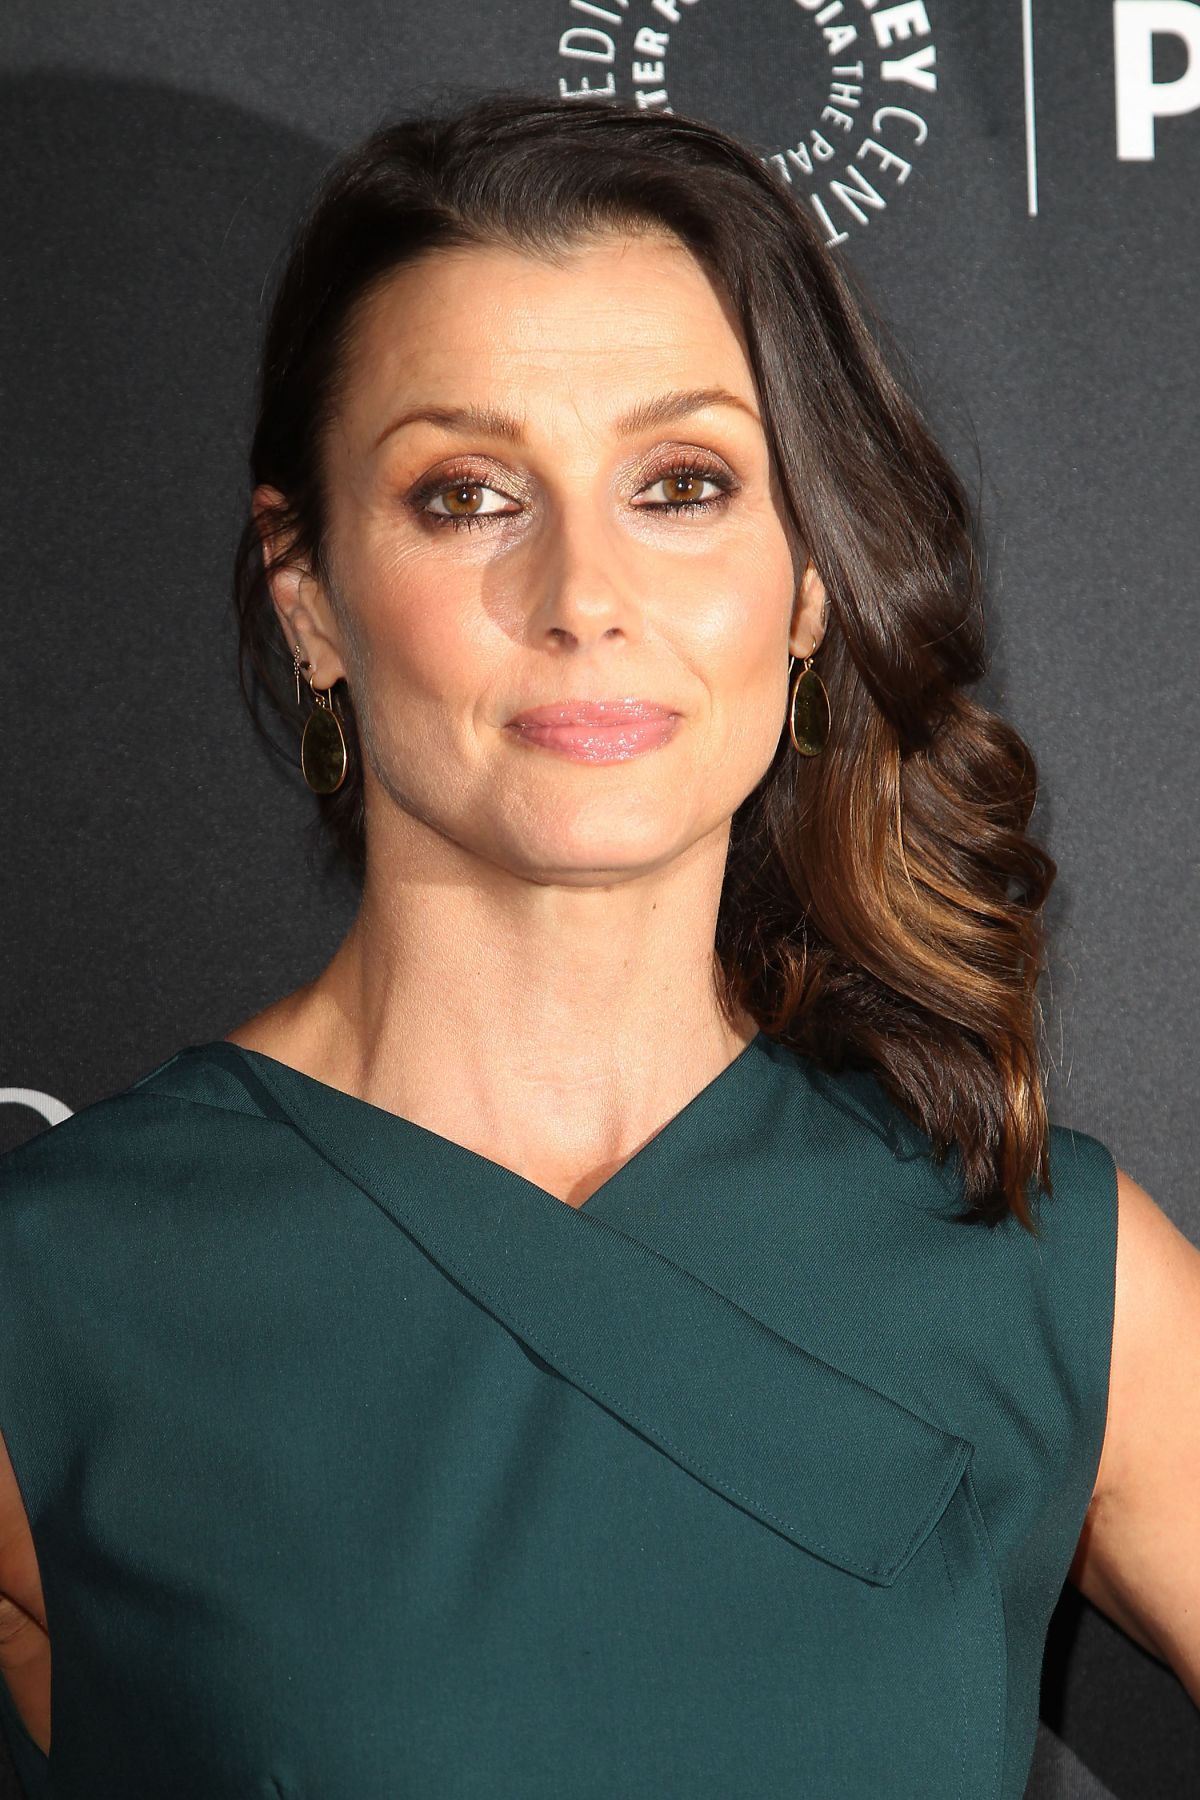 Blue Bloods Stars Get Ready For Their Close-Ups - Page 22 ...  |Bridget Moynahan Blue Bloods